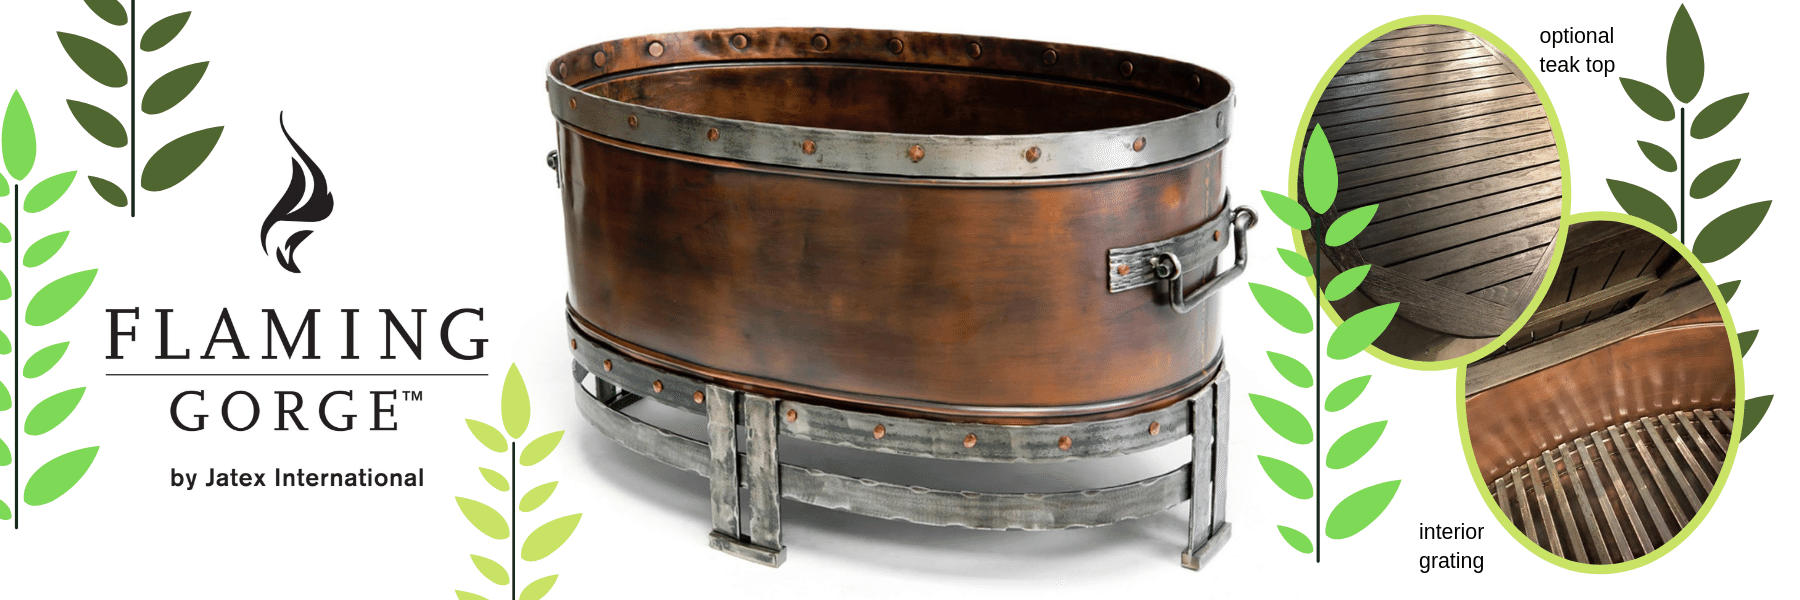 The Copperstone Firepit by Flaming Gorge is for the refined outdoors with its natural copper beauty